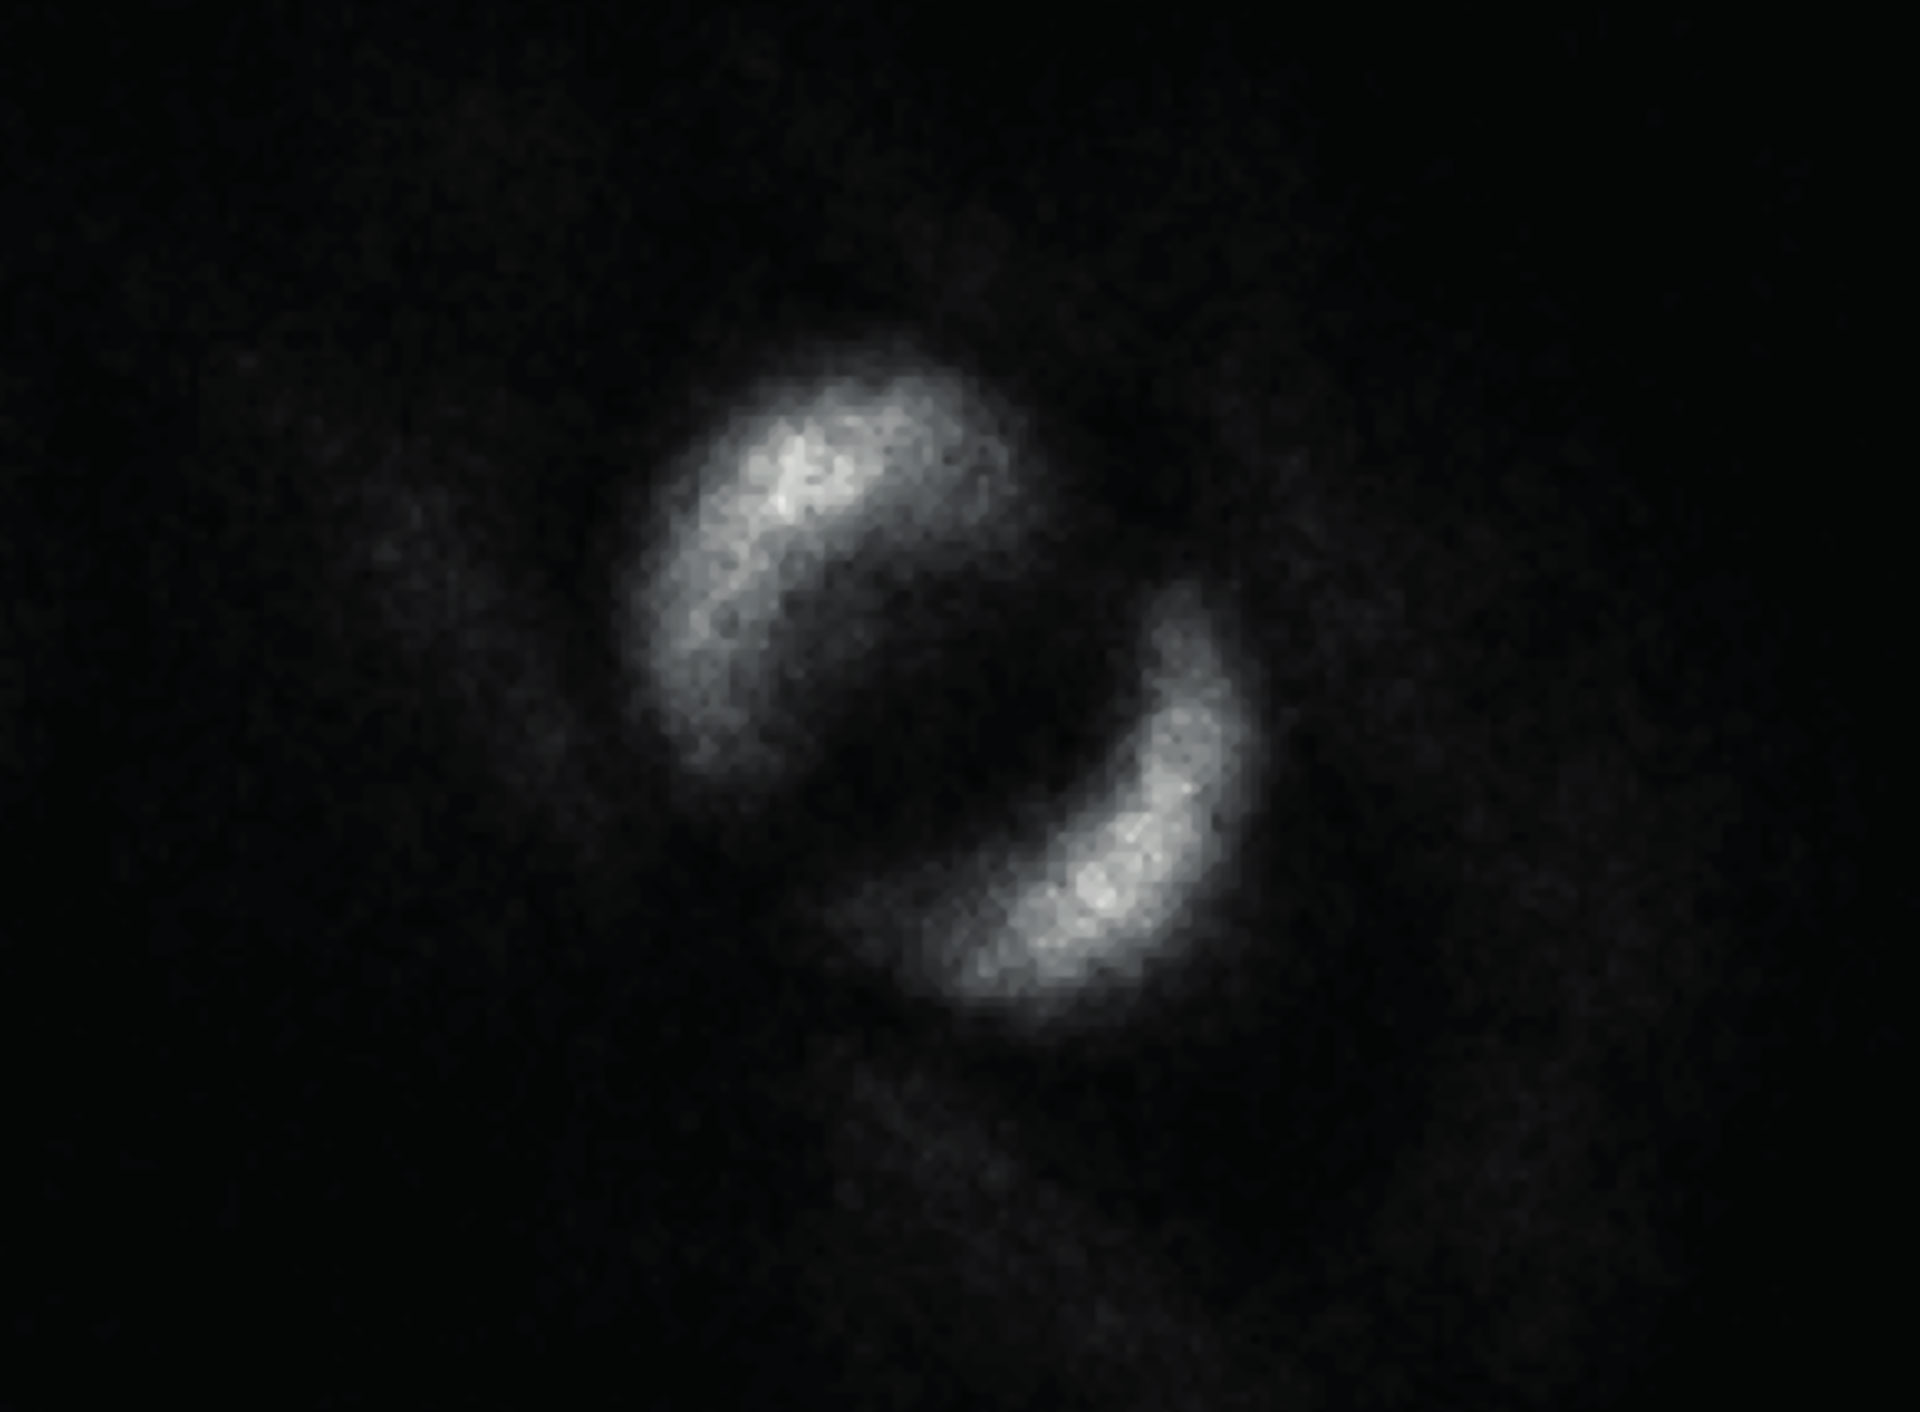 """World first: Quantum entanglement photo captures """"spooky action at a distance"""""""